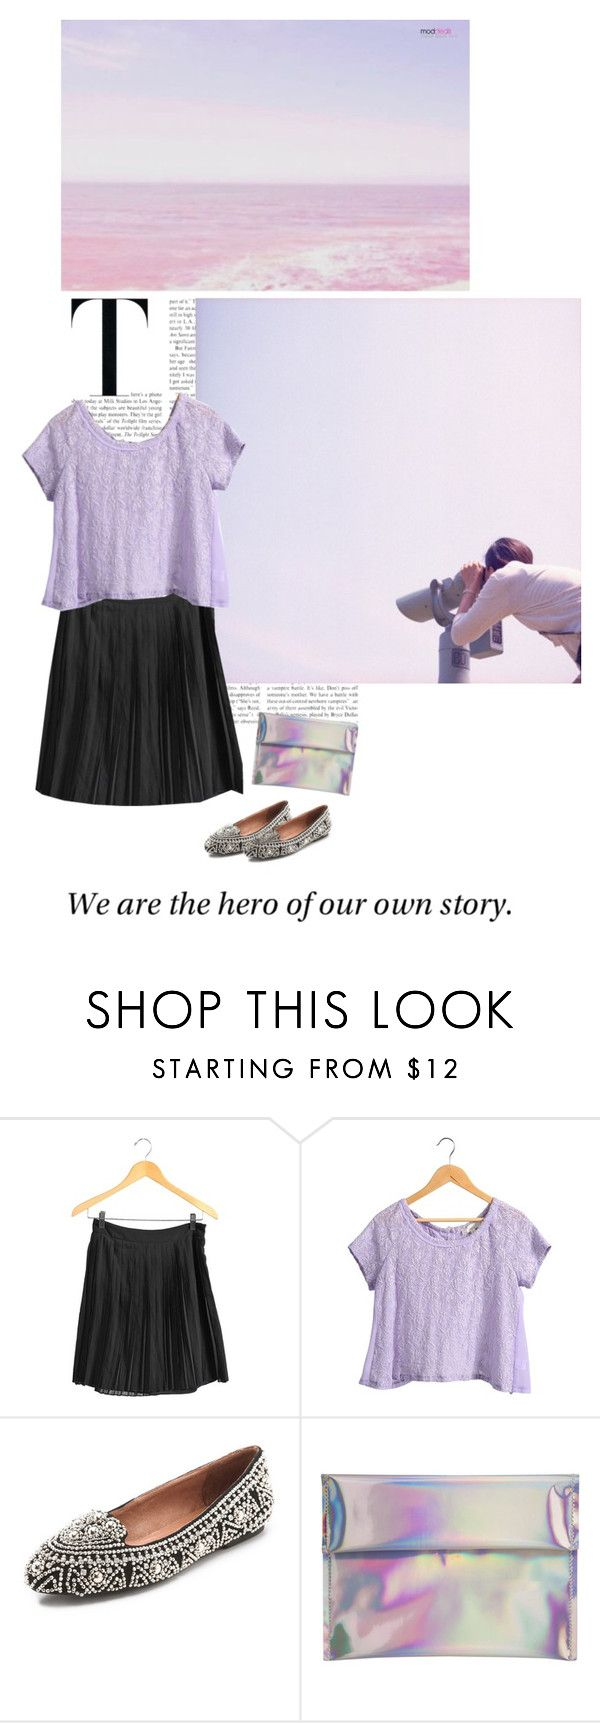 """With a whisper, we will tame the vicious seas."" by bestdressx ❤ liked on Polyvore featuring Grace, Jeffrey Campbell, women's clothing, women, female, woman, misses and juniors"